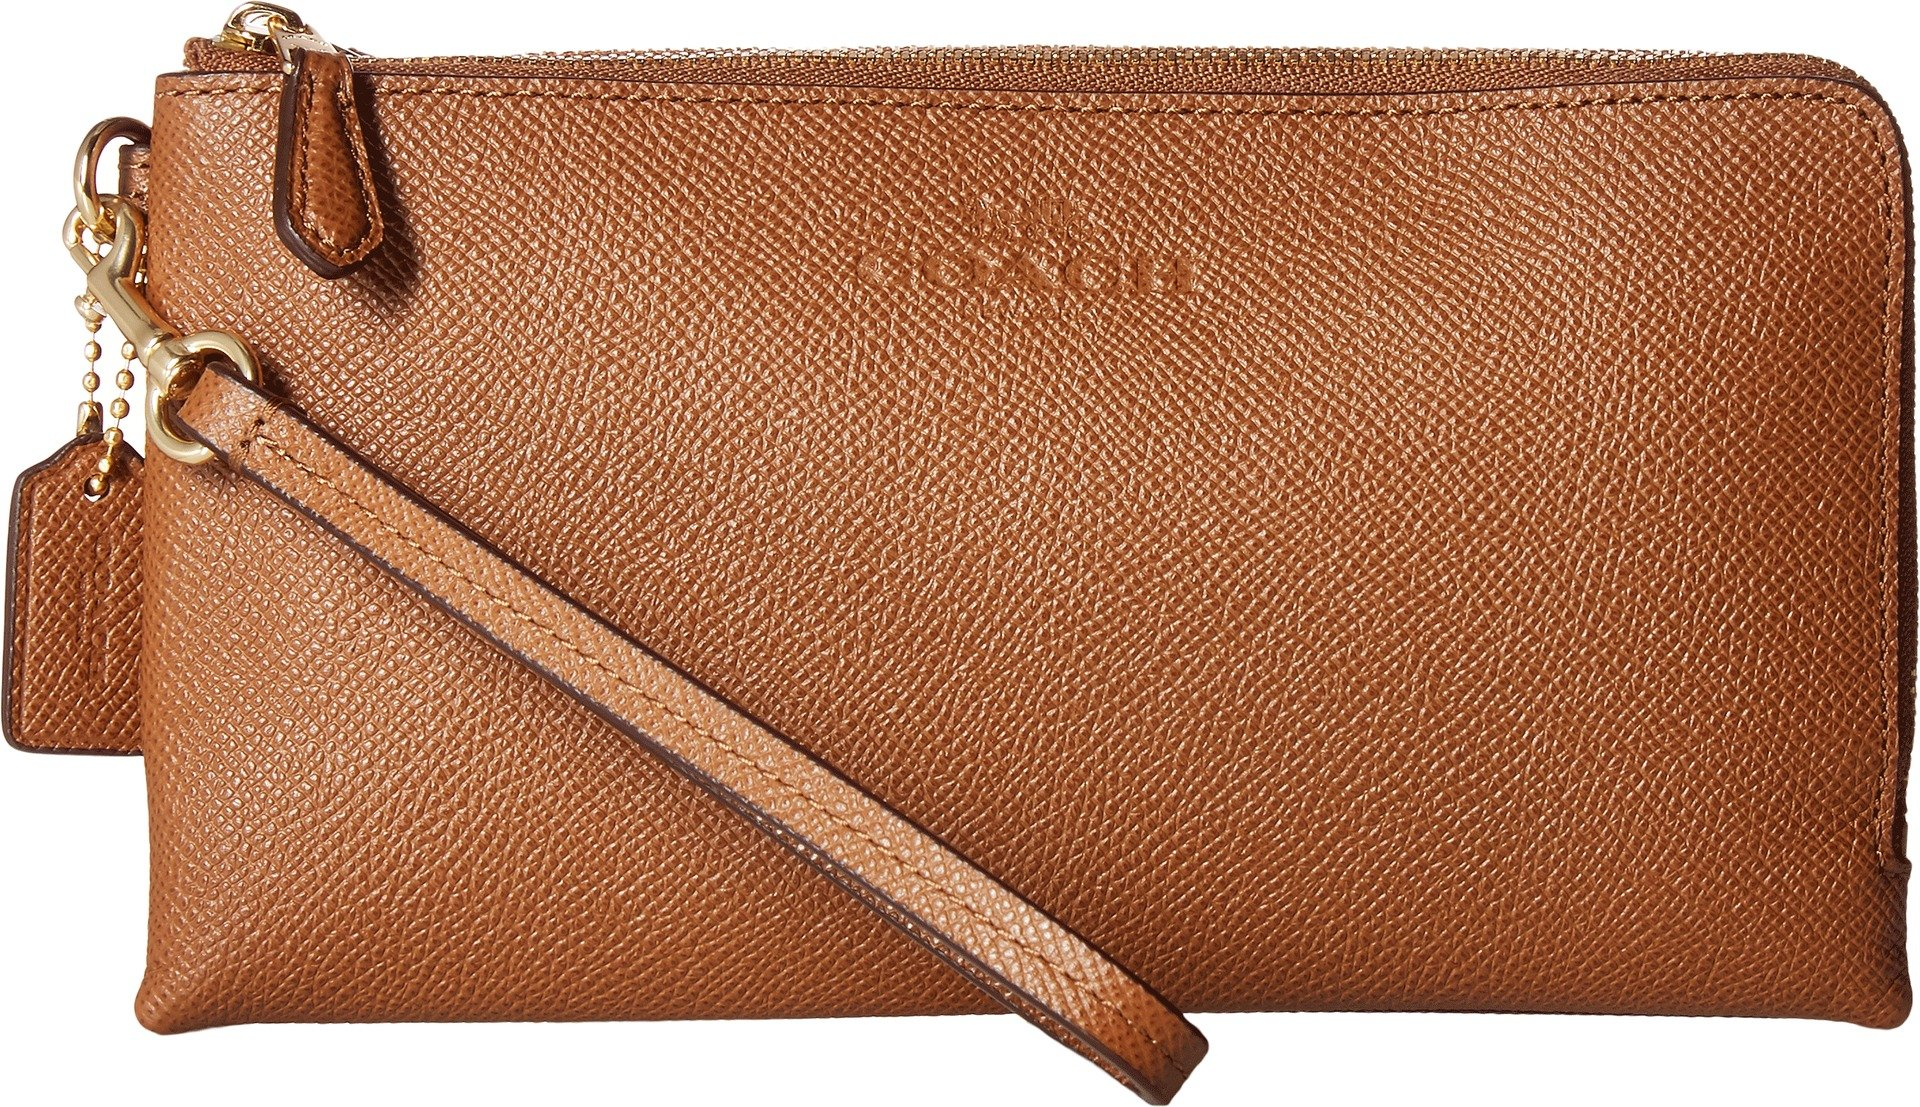 COACH Women's Pebbled Leather Double Zip Wallet Im/Saddle One Size